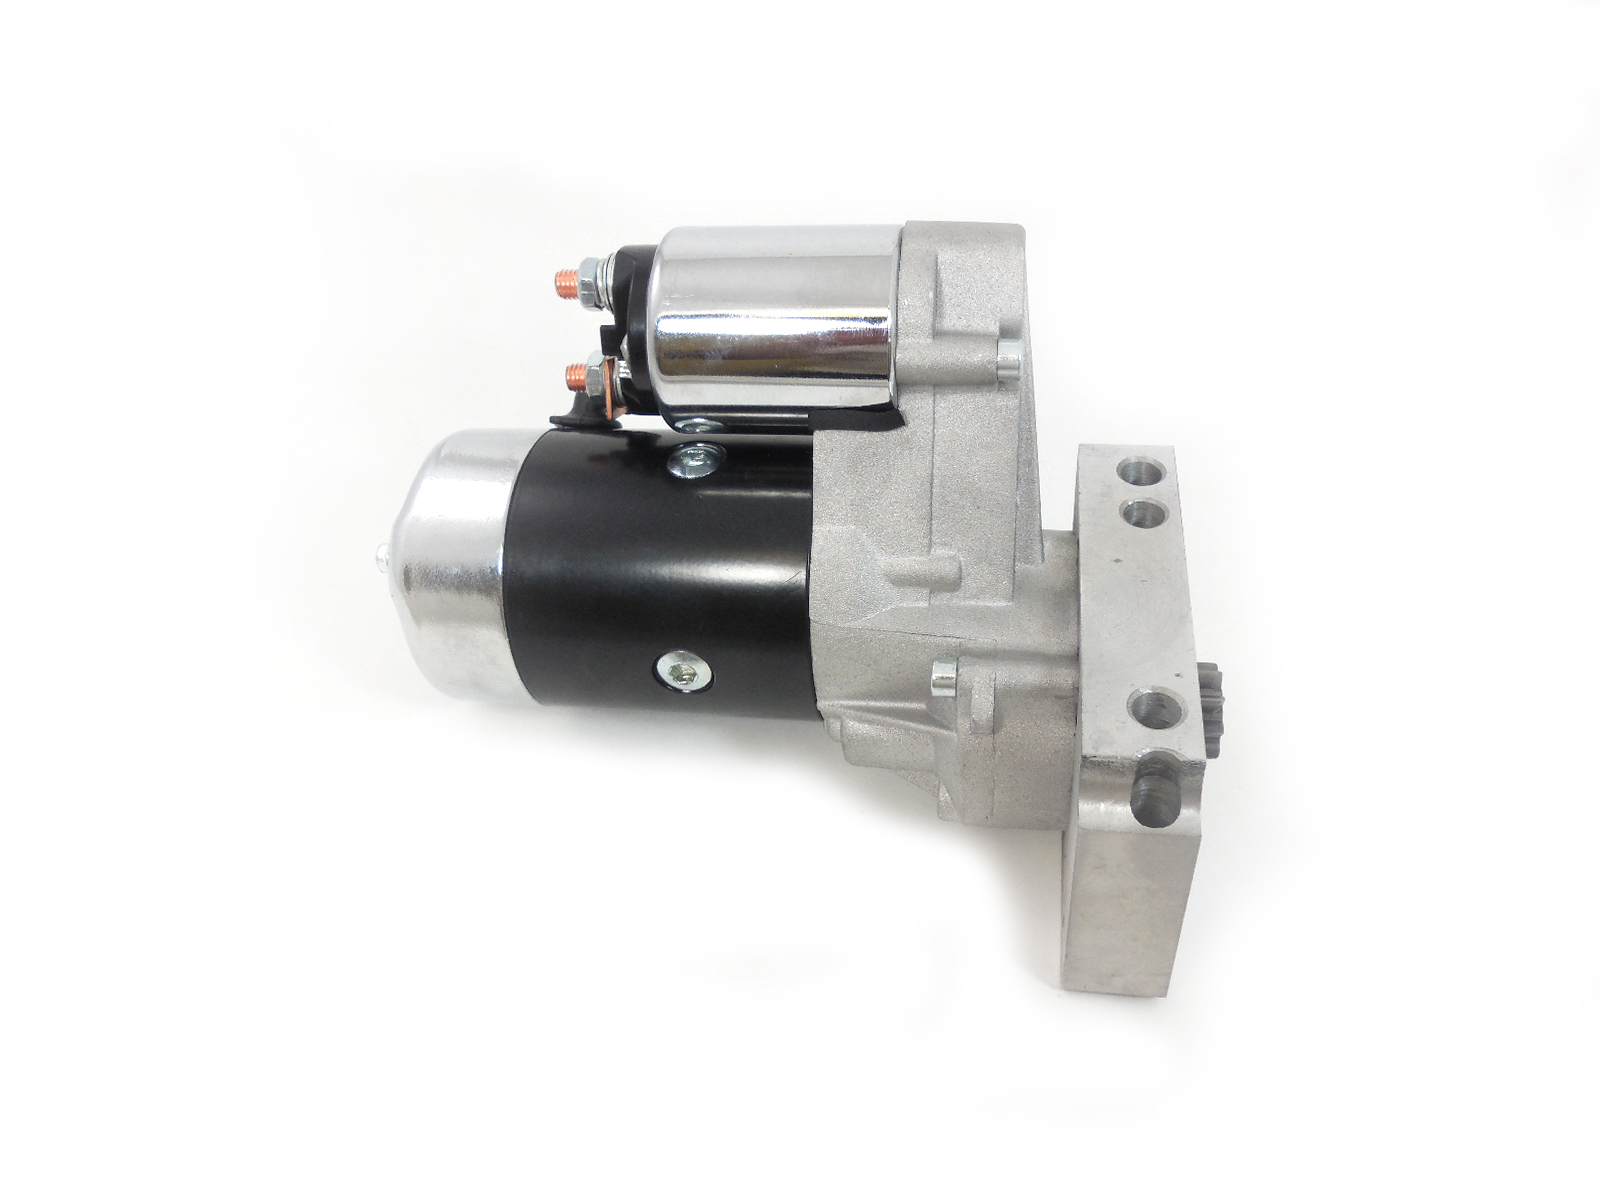 Racing Power Company R3978X Starter, High Performance Tilton Style Starter, Gear Reduction, 168 / 153 Tooth Flywheel, Chevy V8, Each